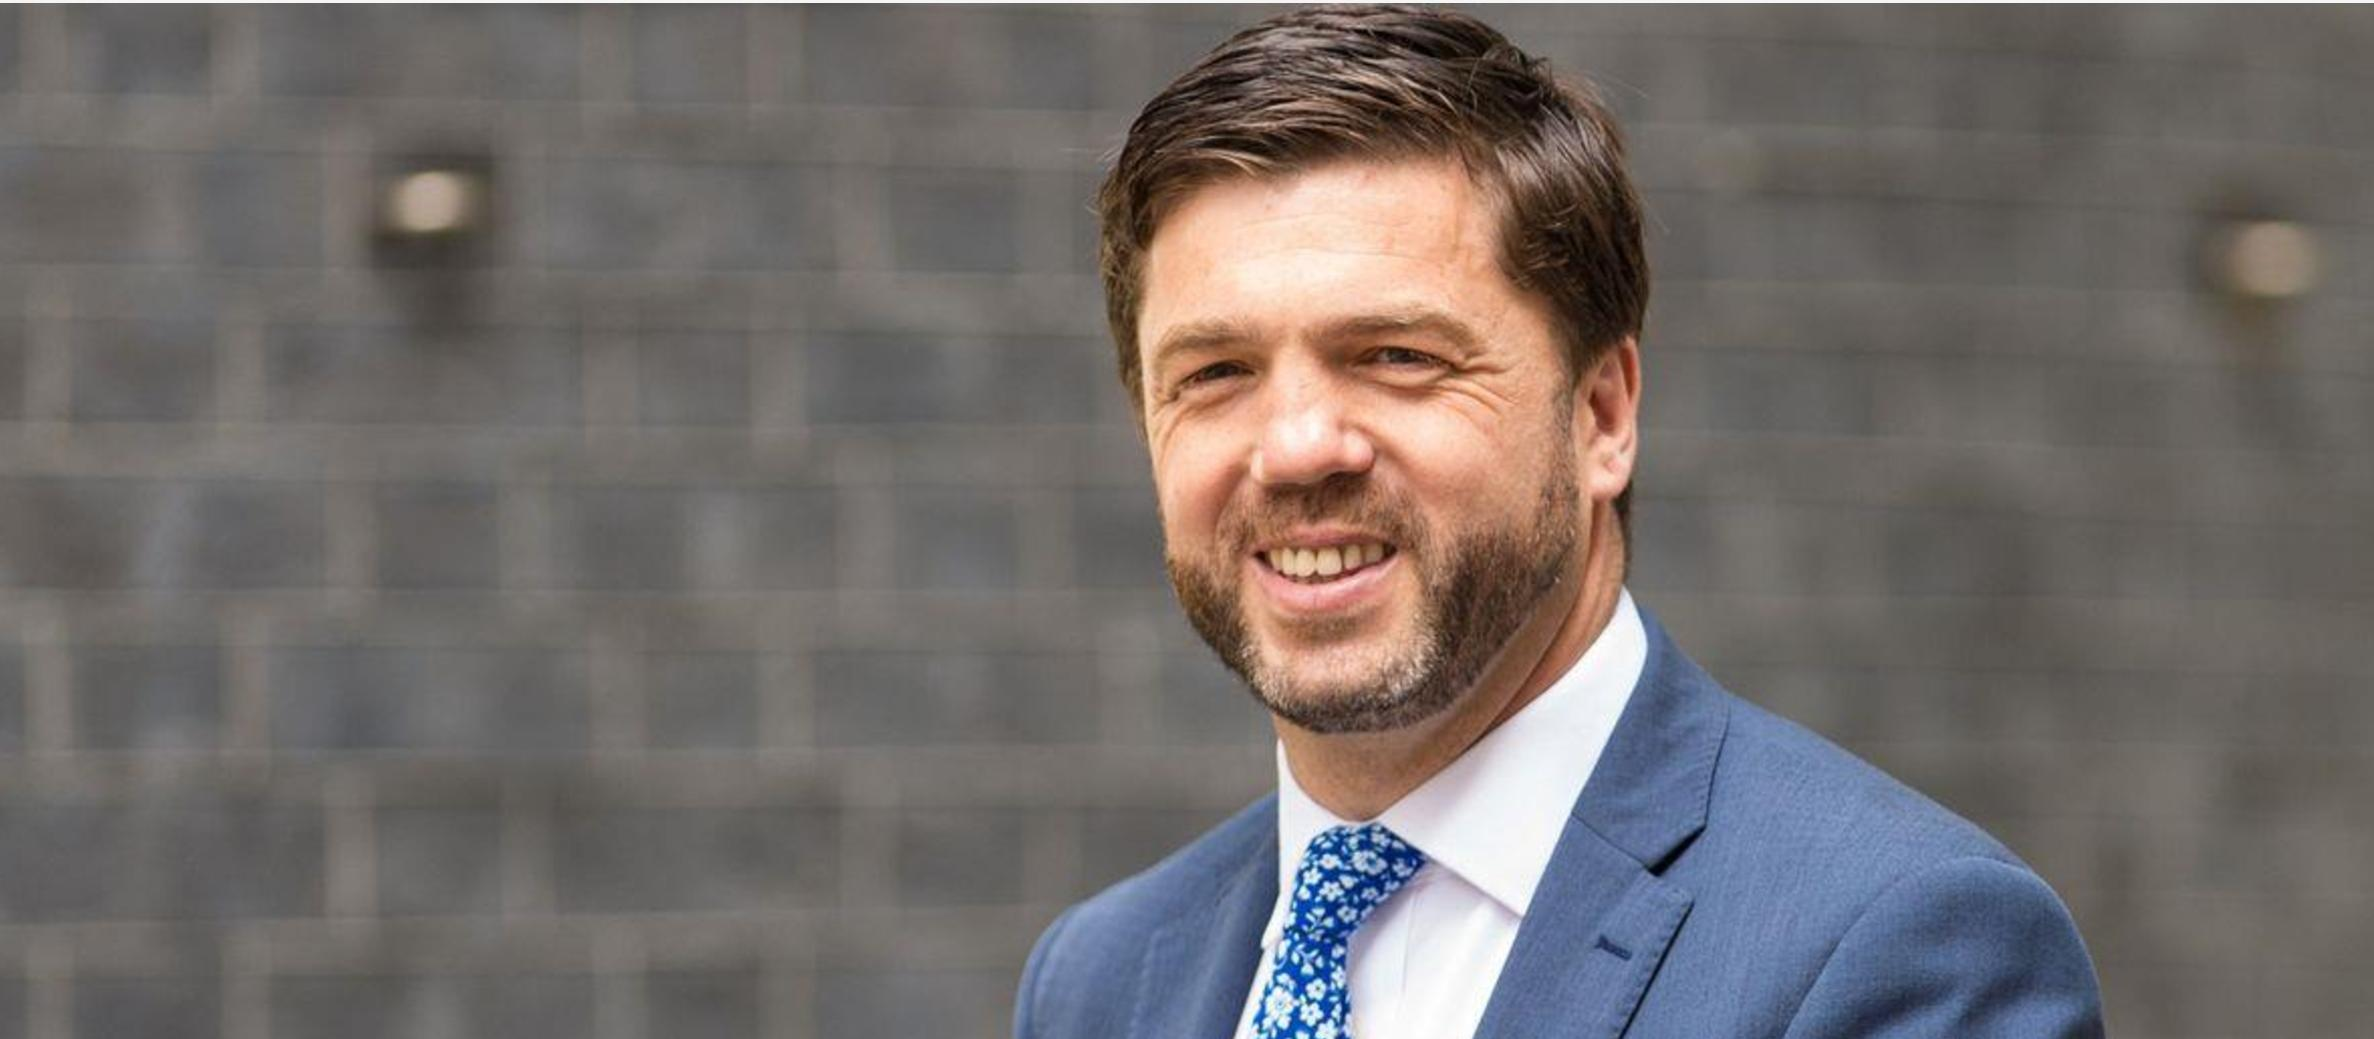 Cabinet minister Stephen Crabb says Palestinians must end glorification of terror